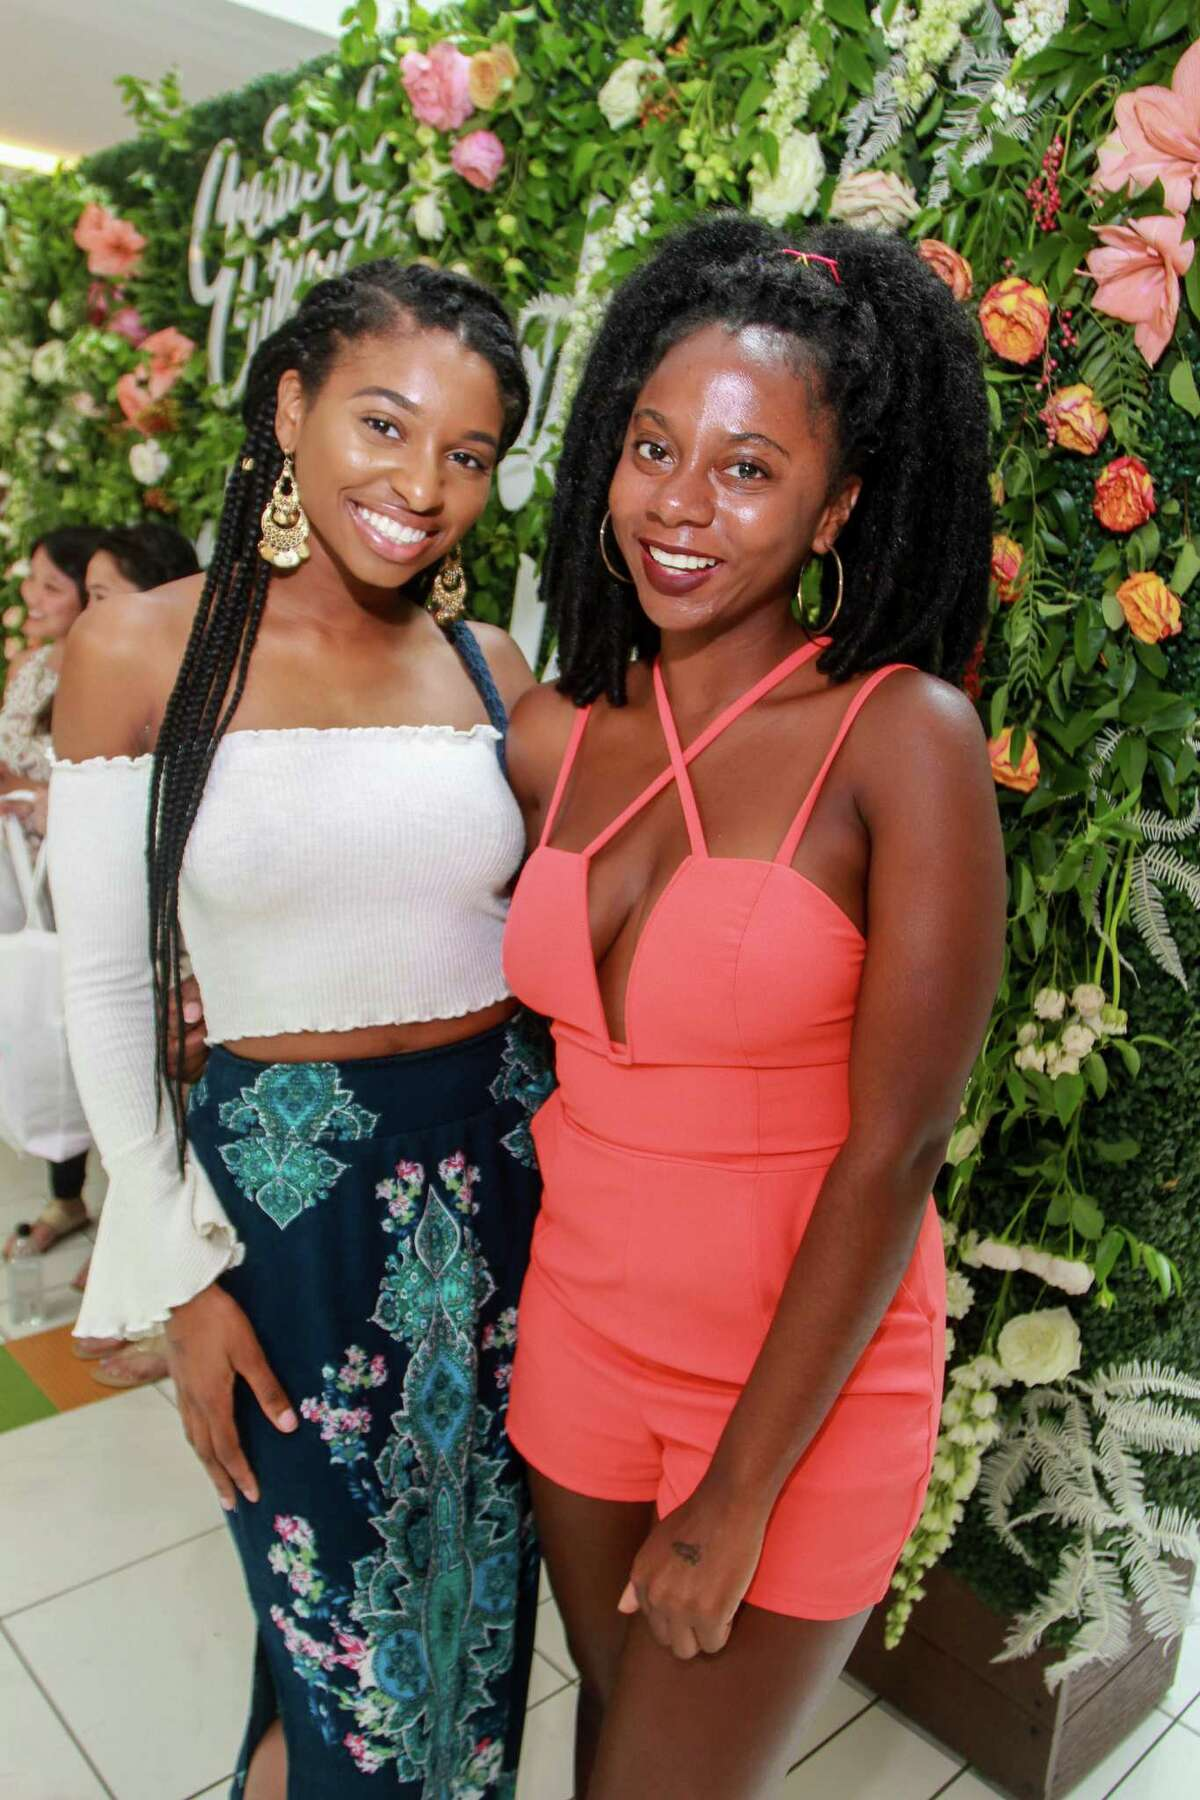 Mandu Mbride, left, and Tiffany Malone at the Create and Cultivate Summit.